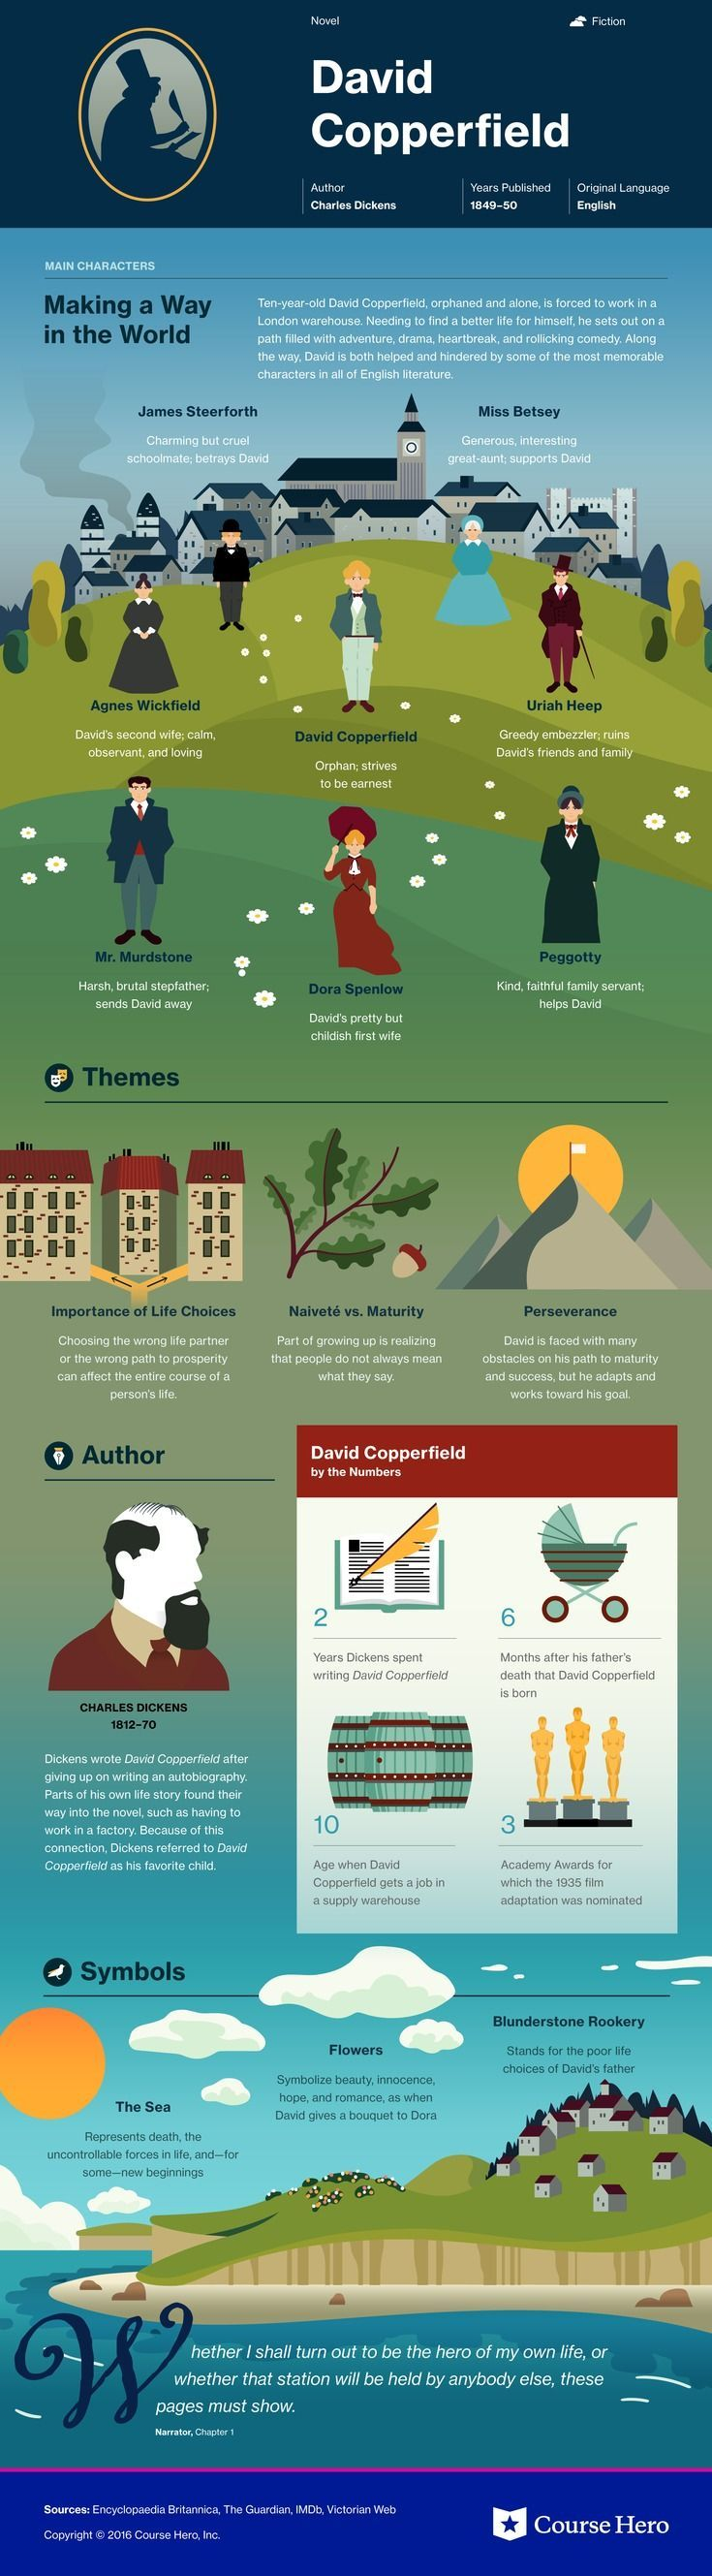 best images about literature infographics the symbolism in charles dickens s david copperfield learn about the different symbols such as blunderstone rookery in david copperfield and how they